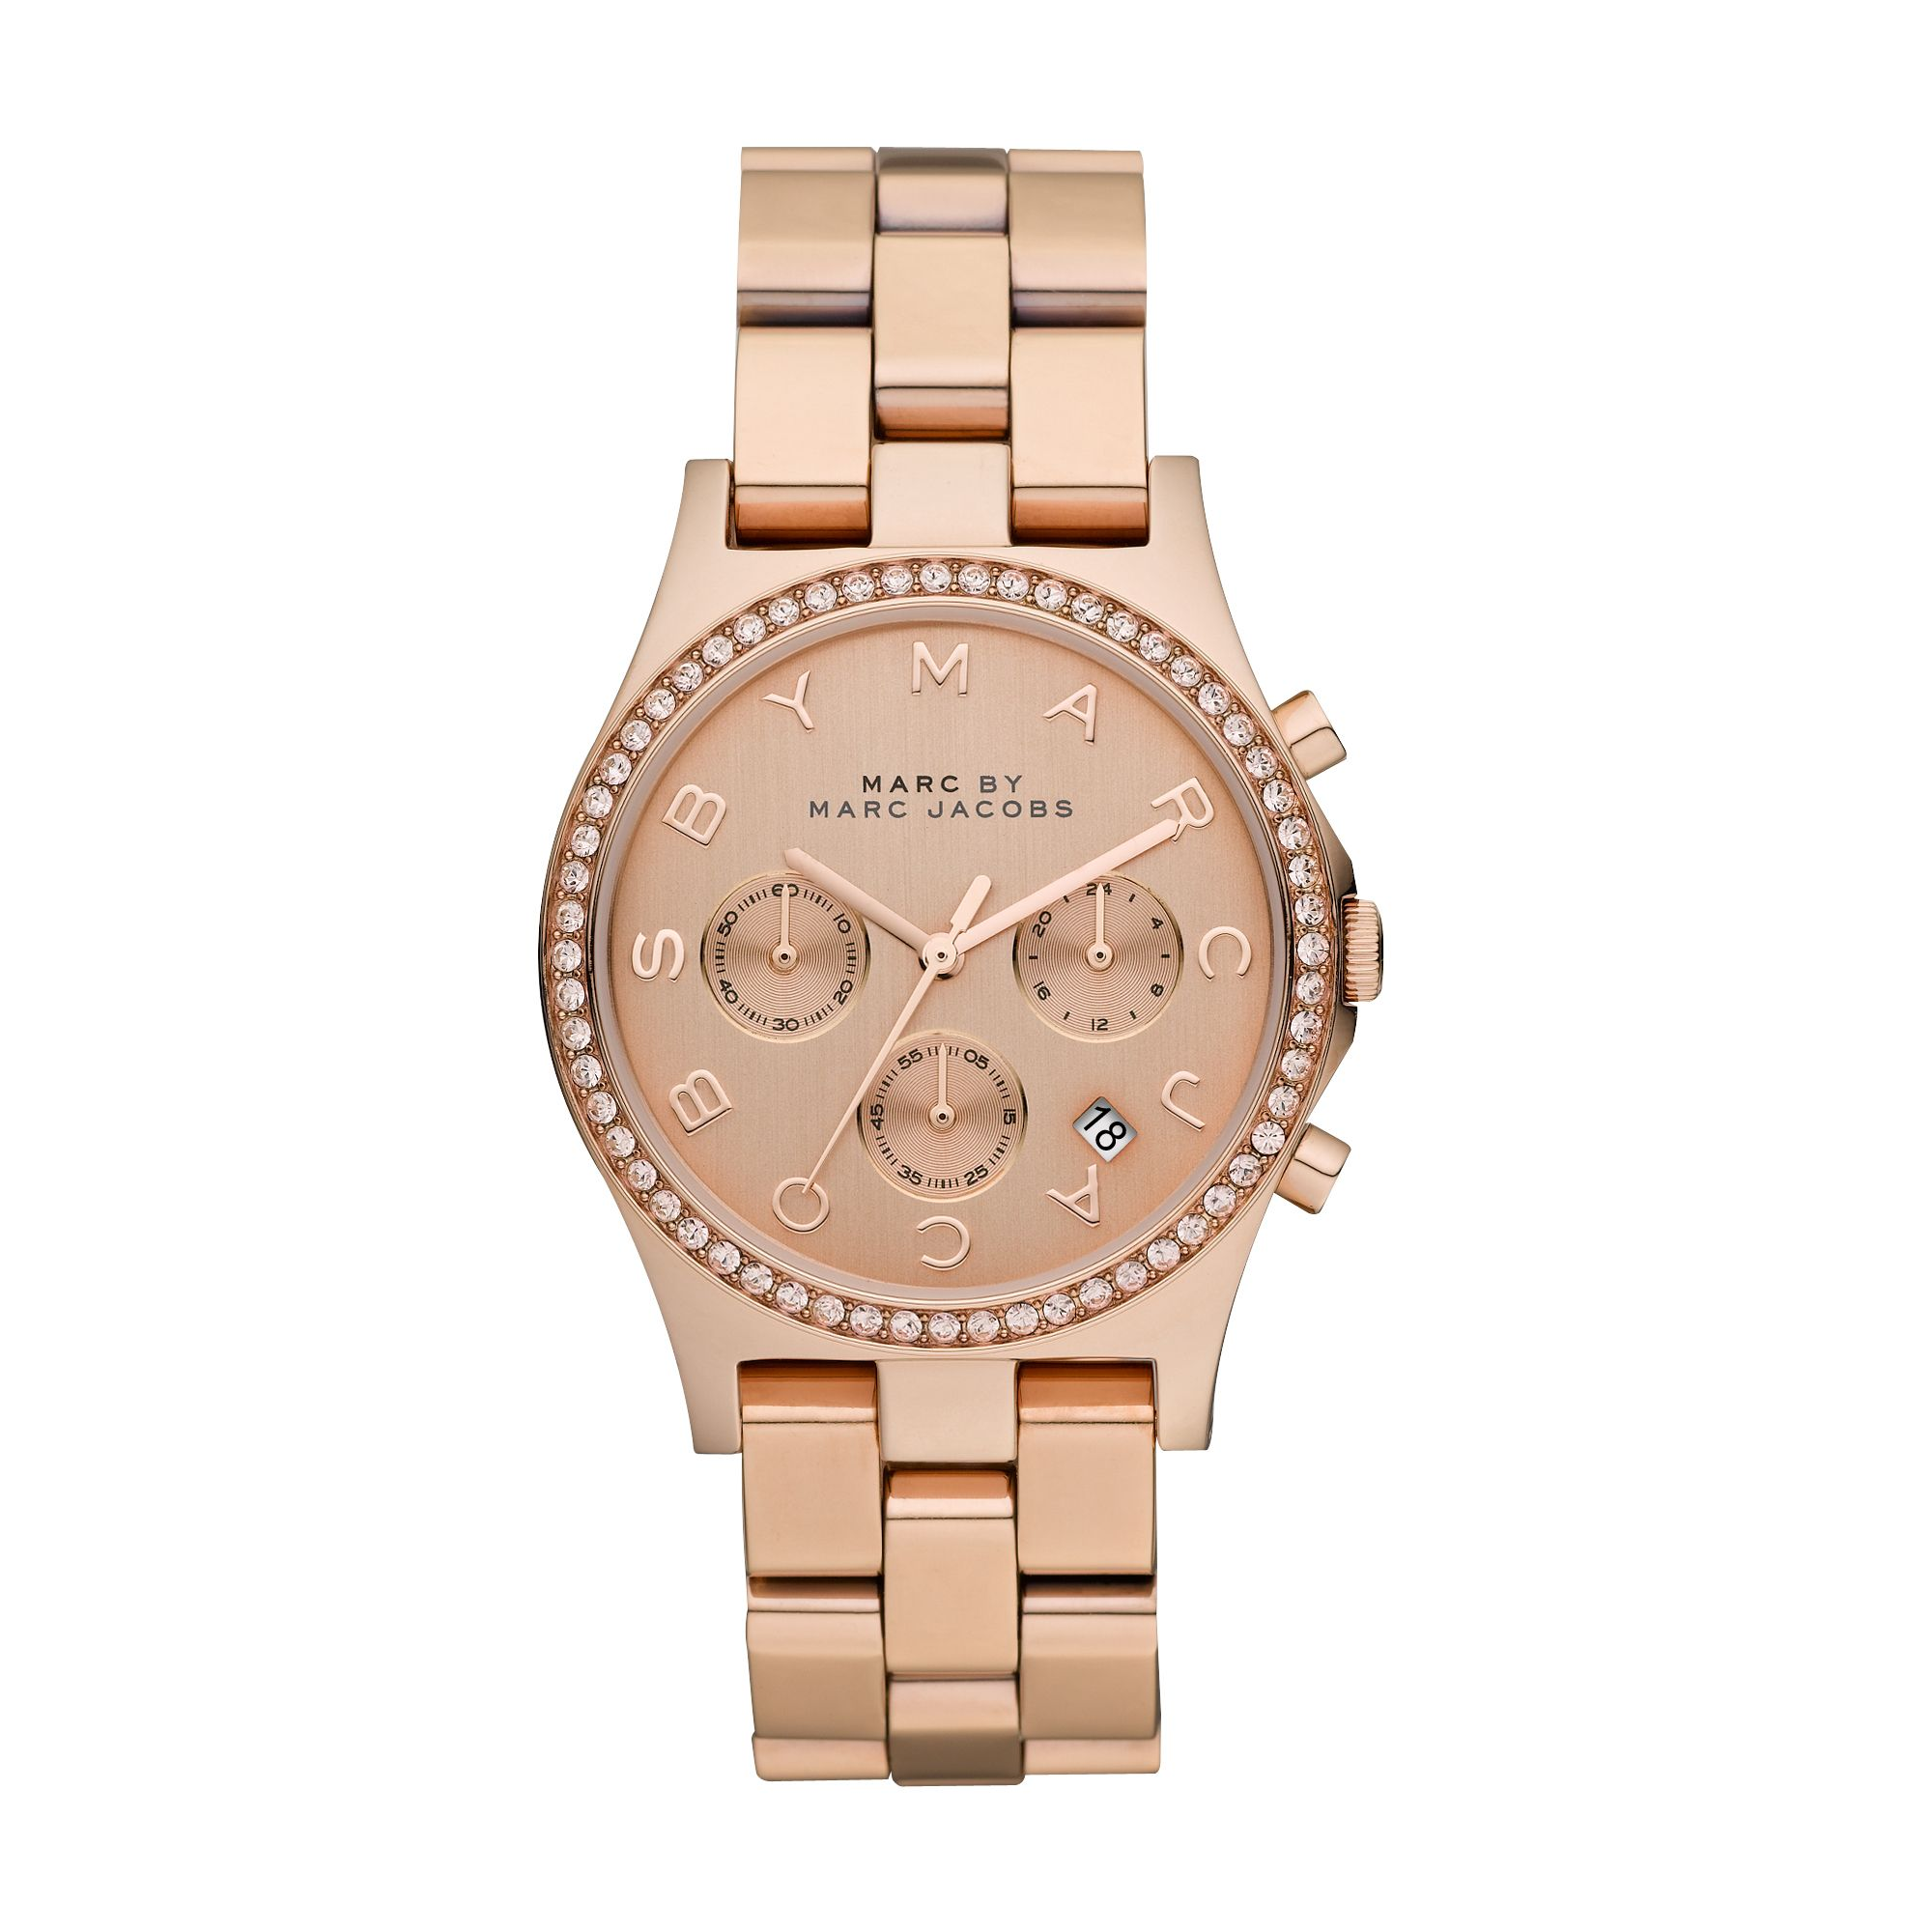 Marc Jacobs Watches Rose Gold